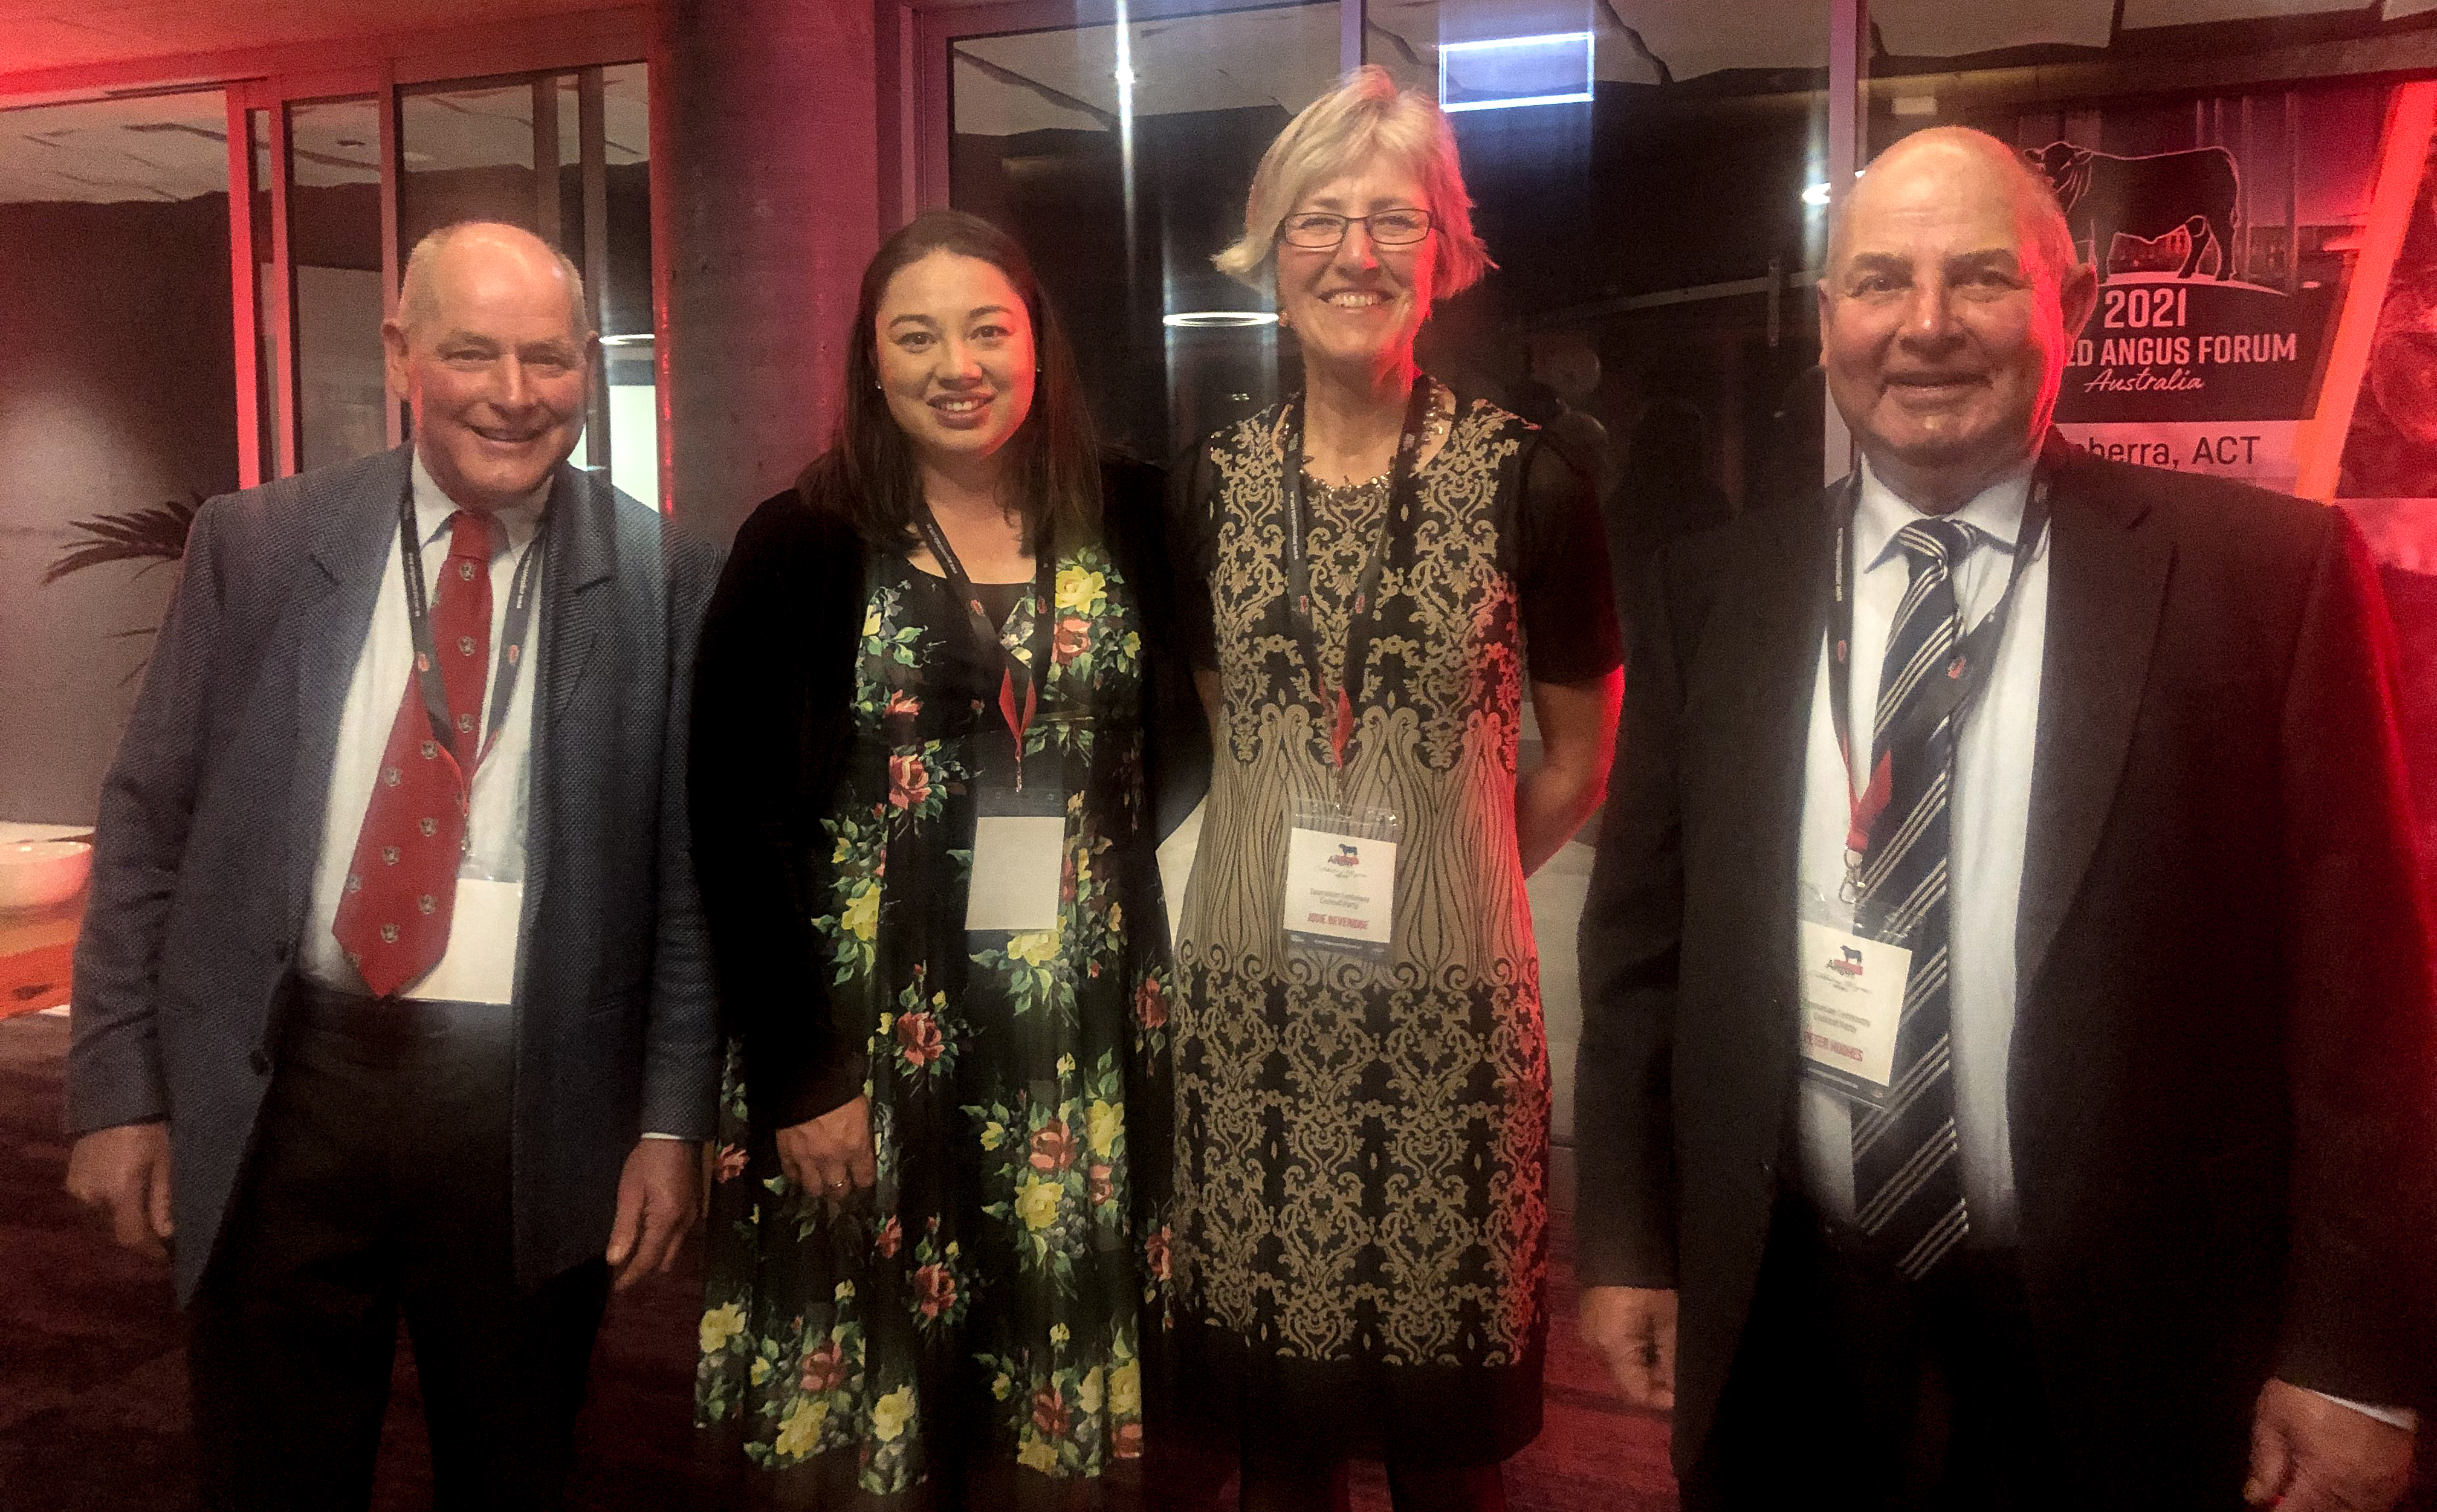 Gerald Archer, Sam Dobson, Josie Beveridge and Peter Hughes at the Tasmanian Centenary Function